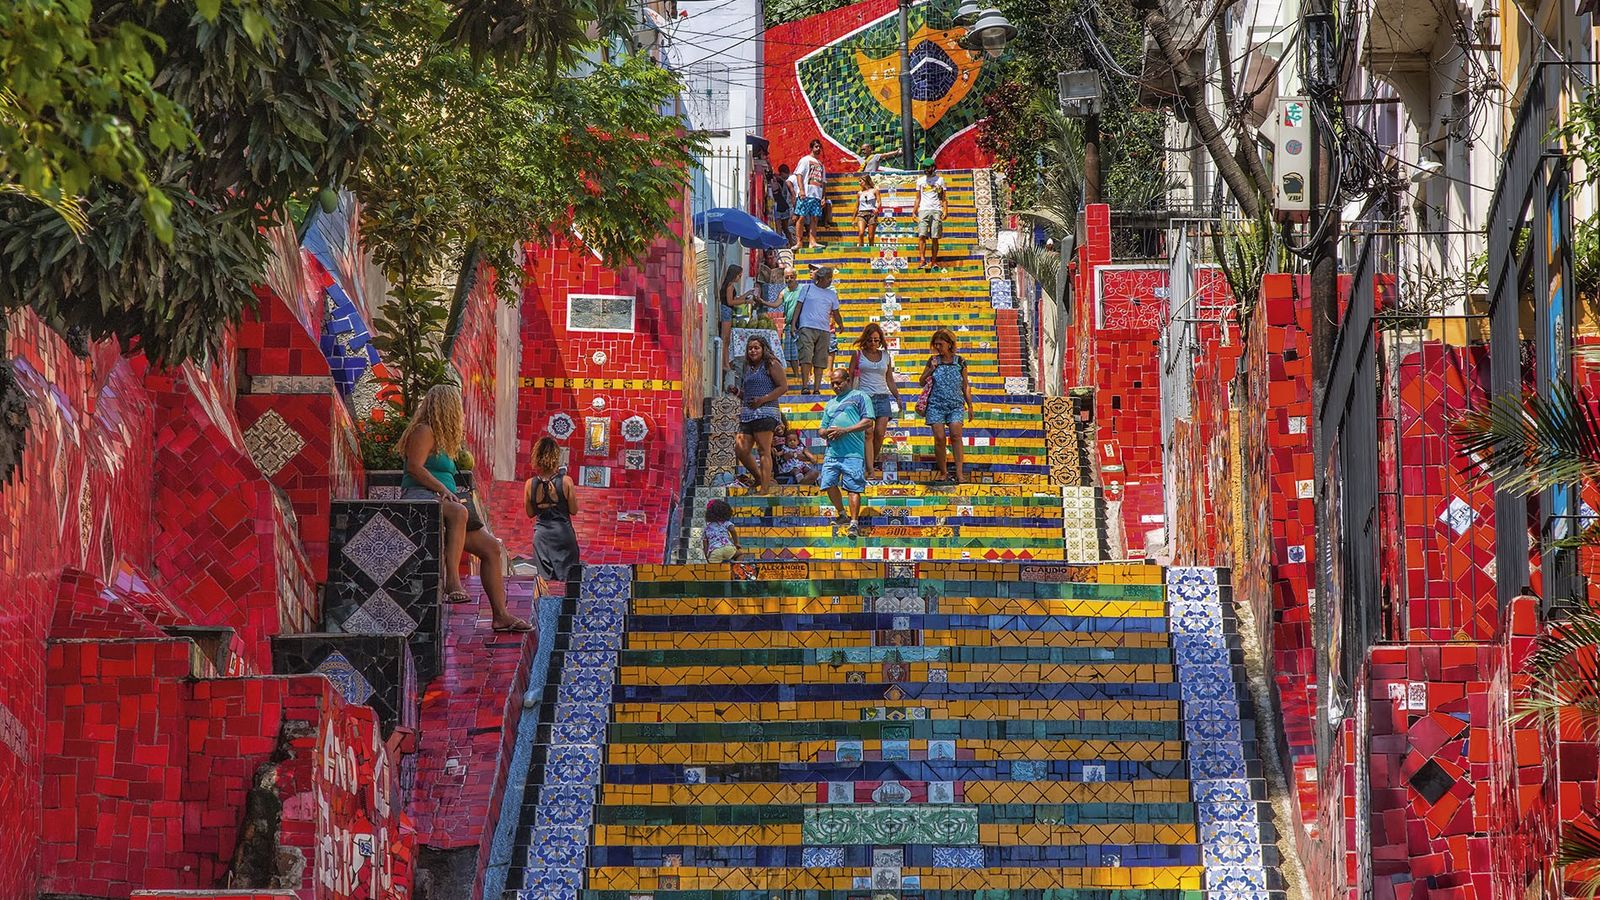 Escadaria Selaron, stairway in Lapa district